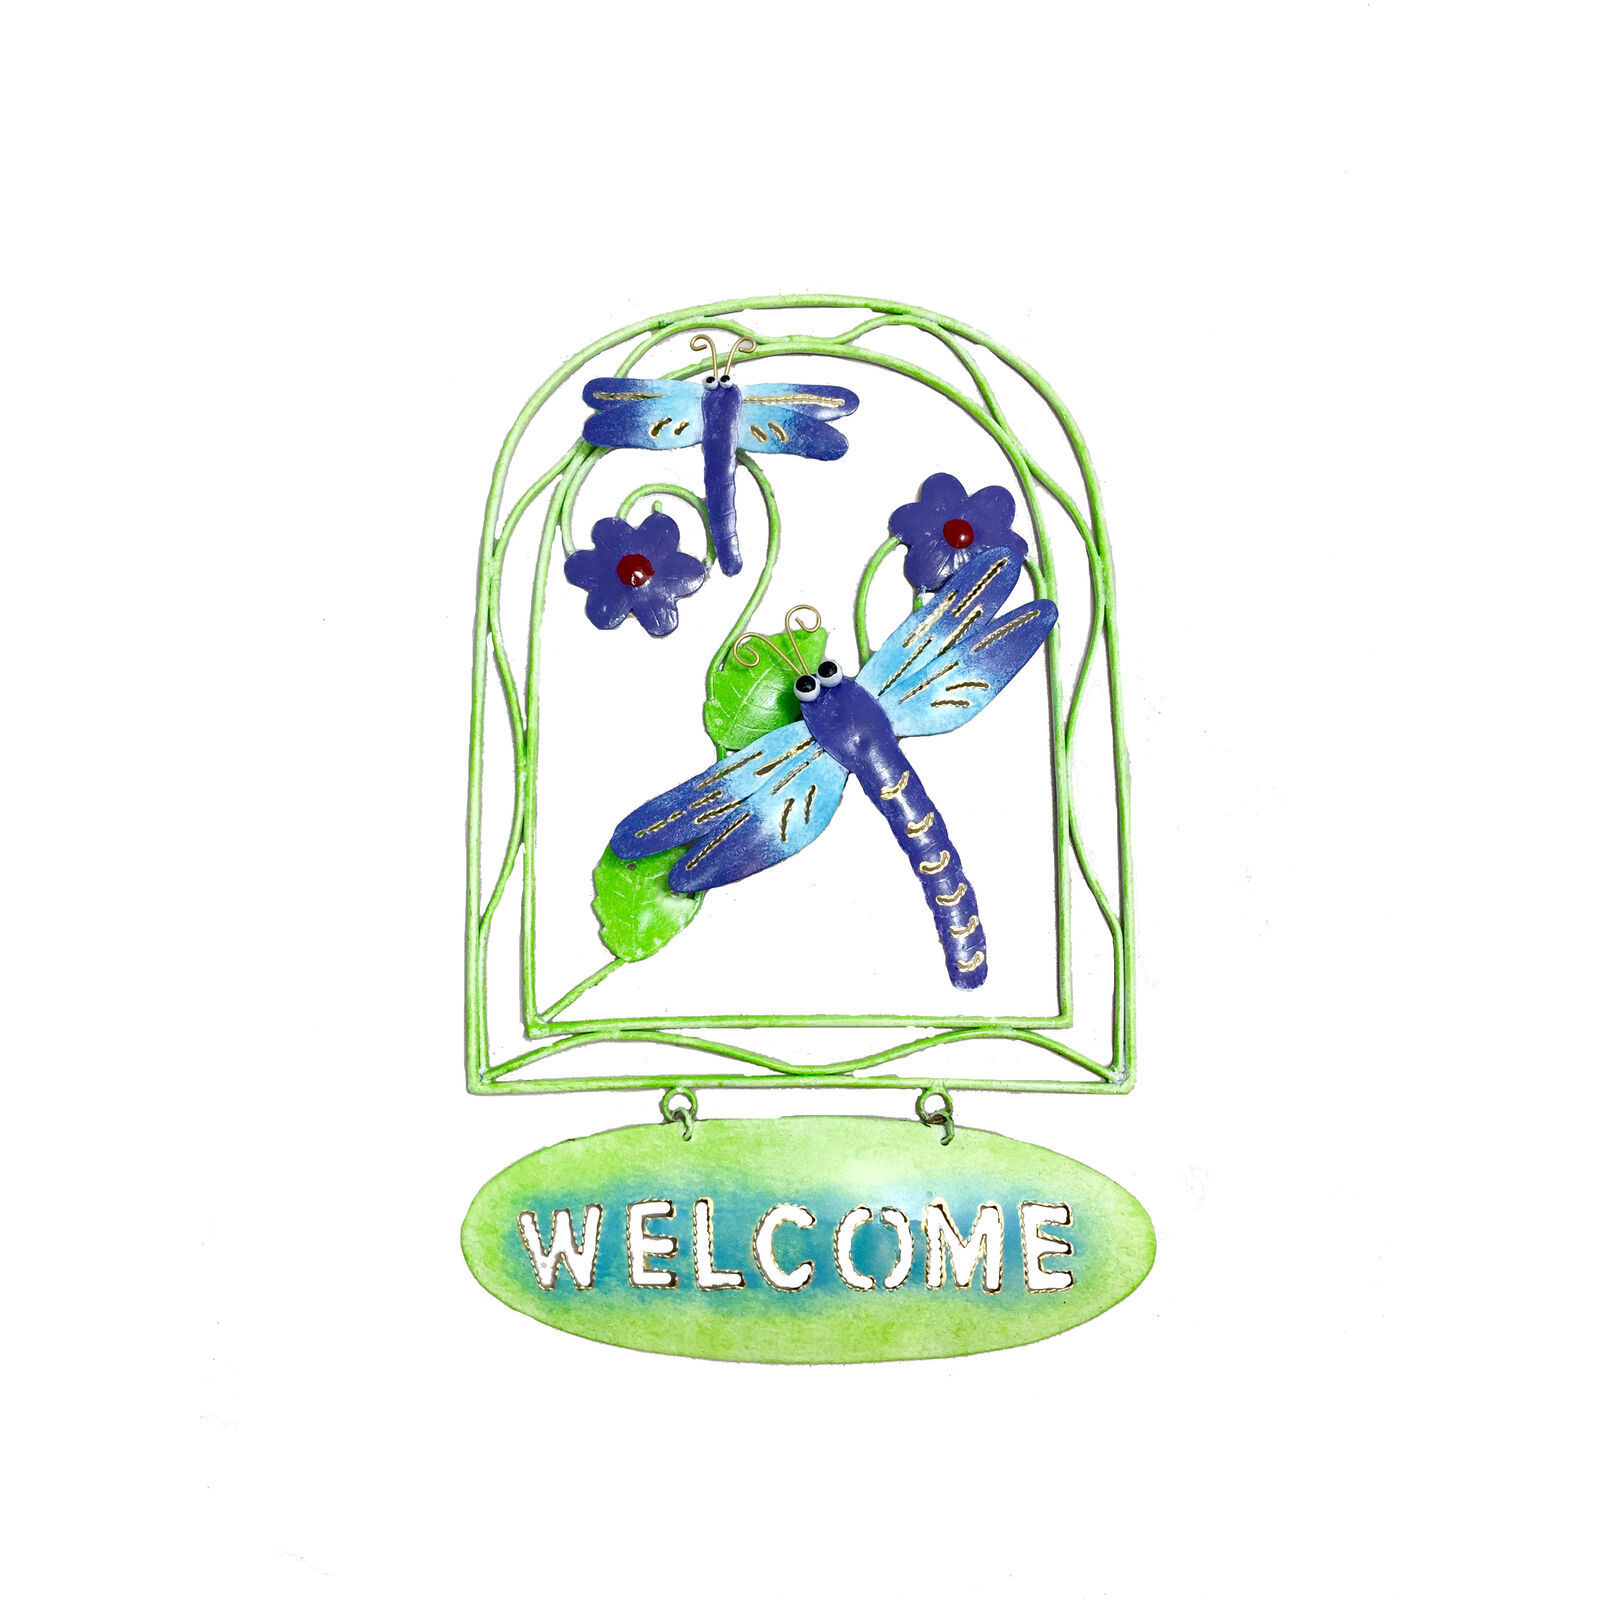 My Family House Dragonfly Welcome Sign - Multicoloured Metal - Handmade - 36 cm